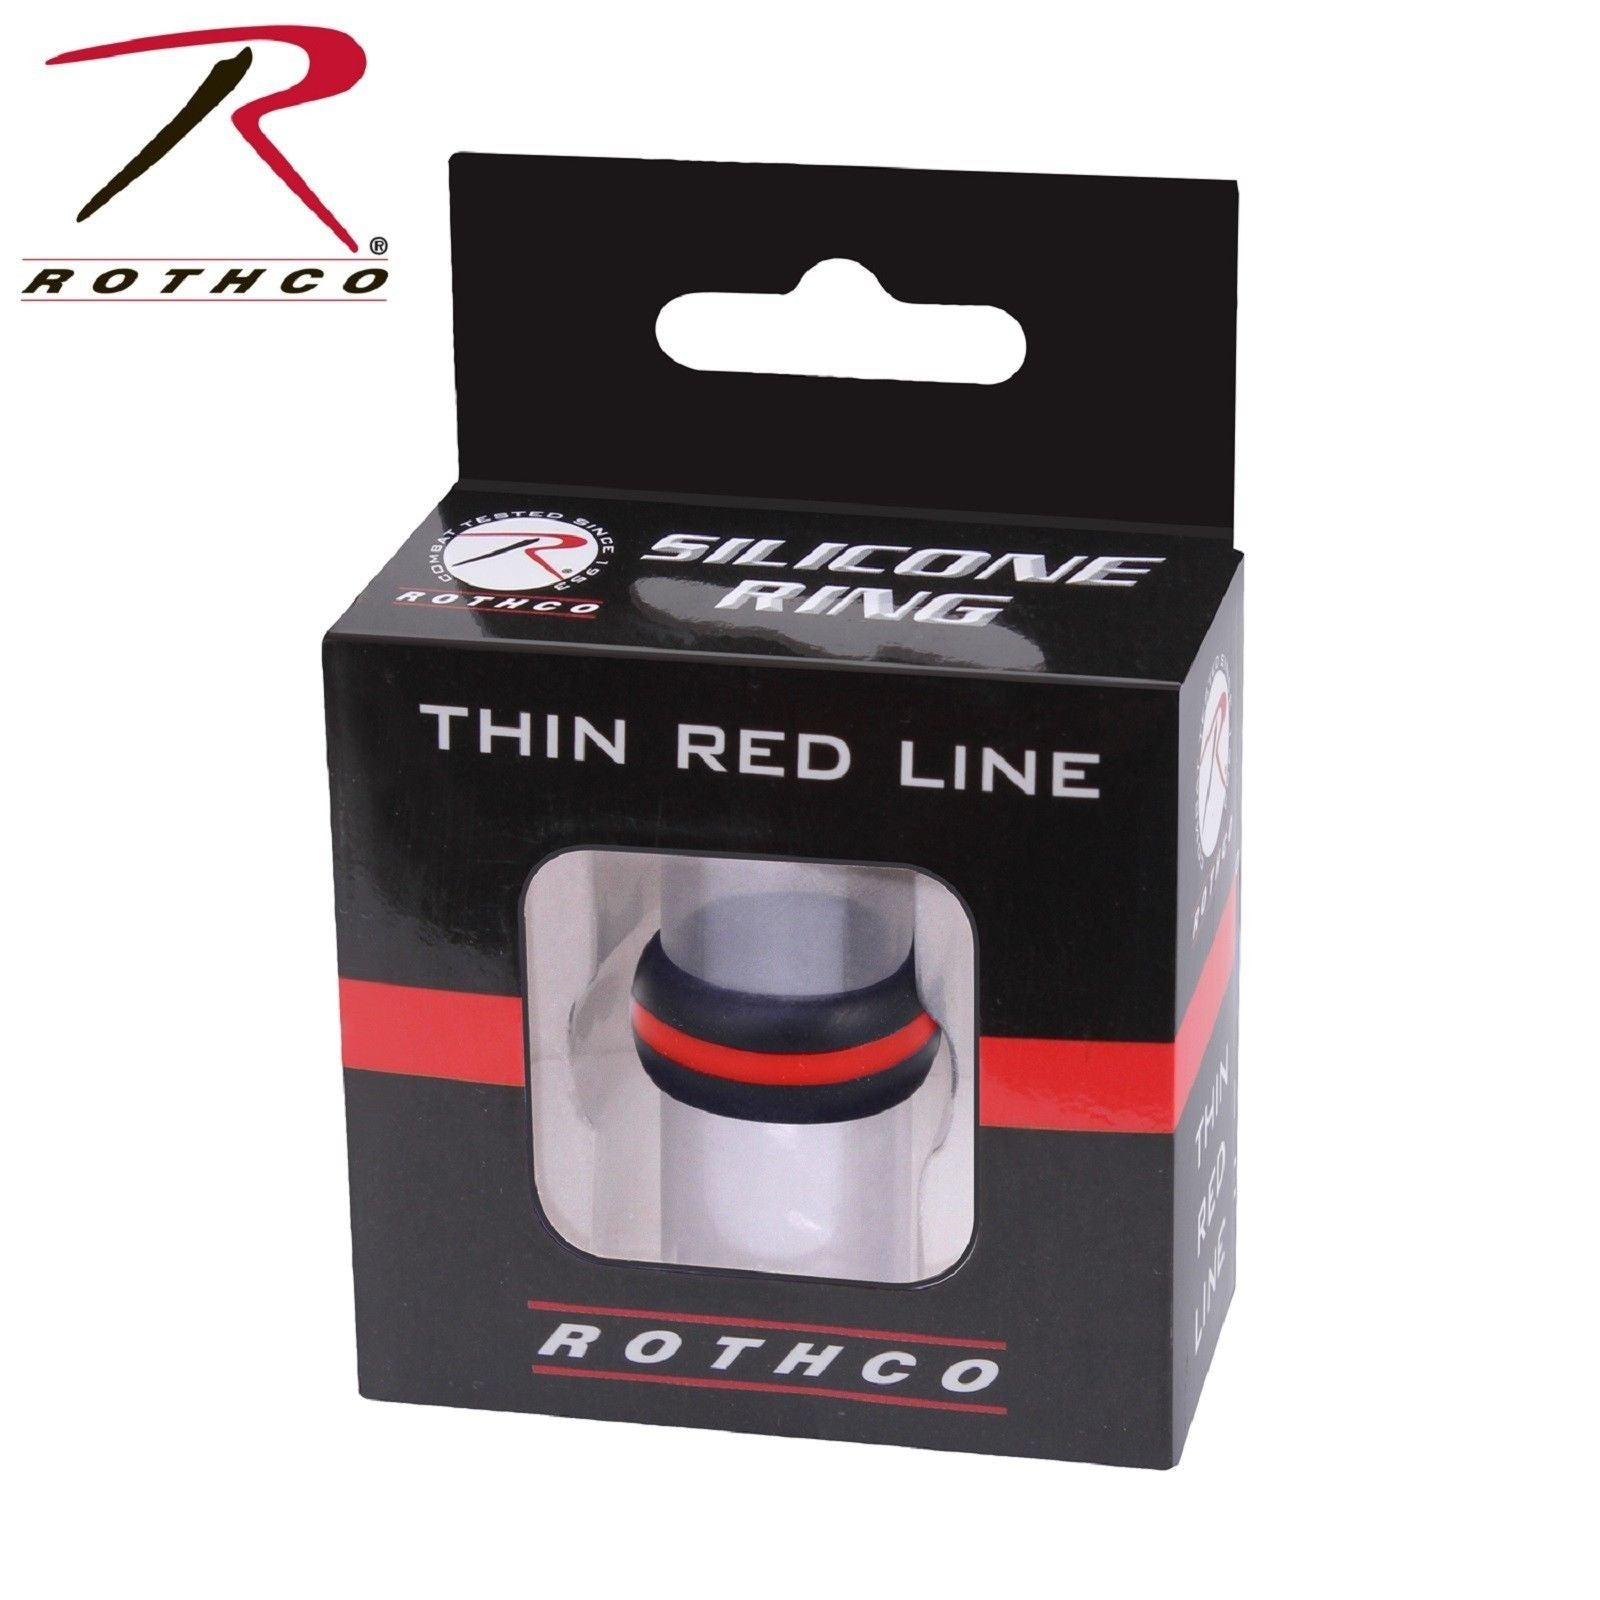 Rothco Thin Red Line Silicone Ring Mens Silicone TRL Wedding Band